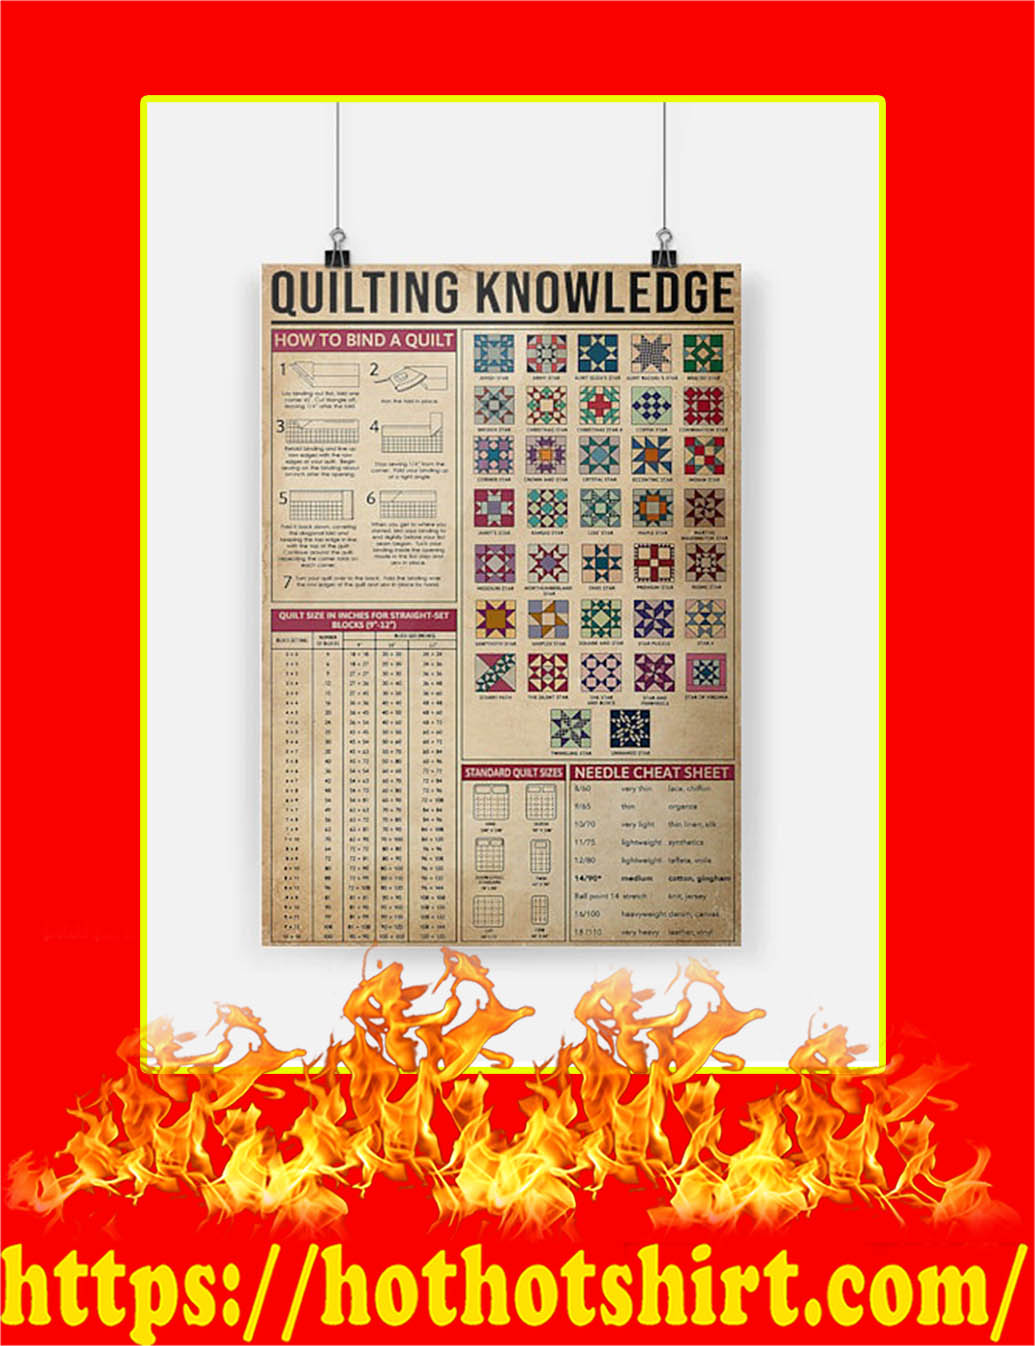 Quilting Knowledge Poster - A3